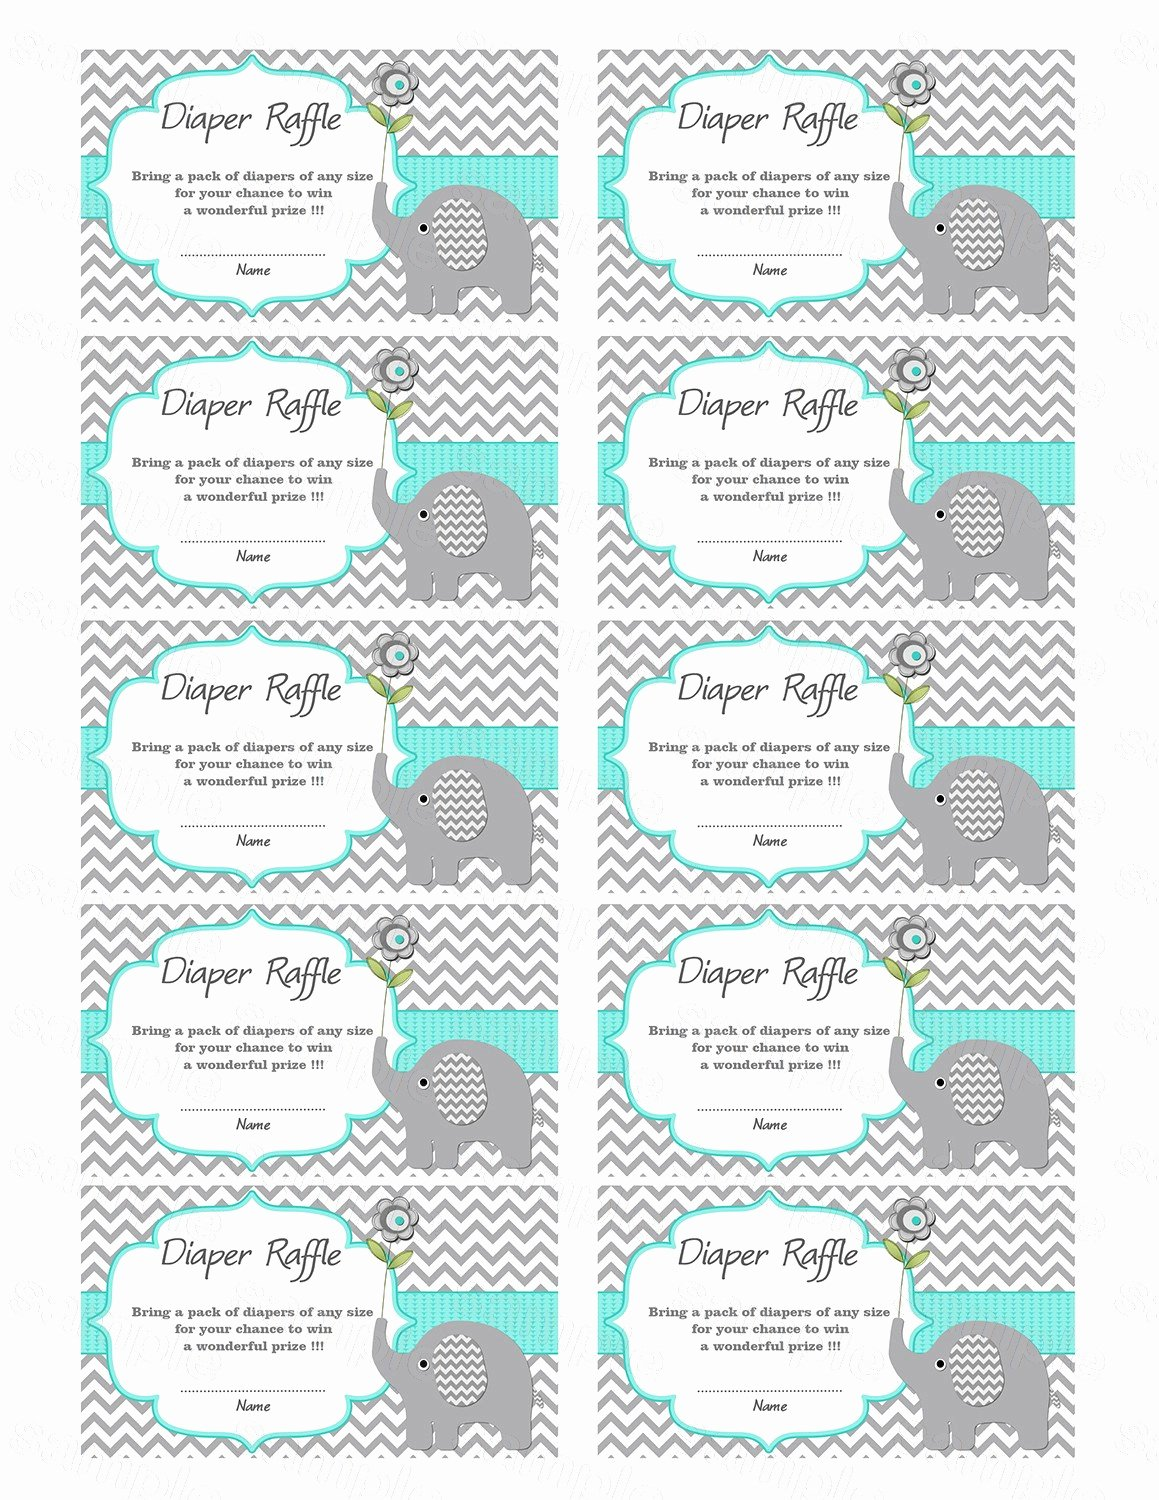 Free Diaper Raffle Template Awesome Elephant Baby Shower Diaper Raffle Ticket Diaper Raffle Card